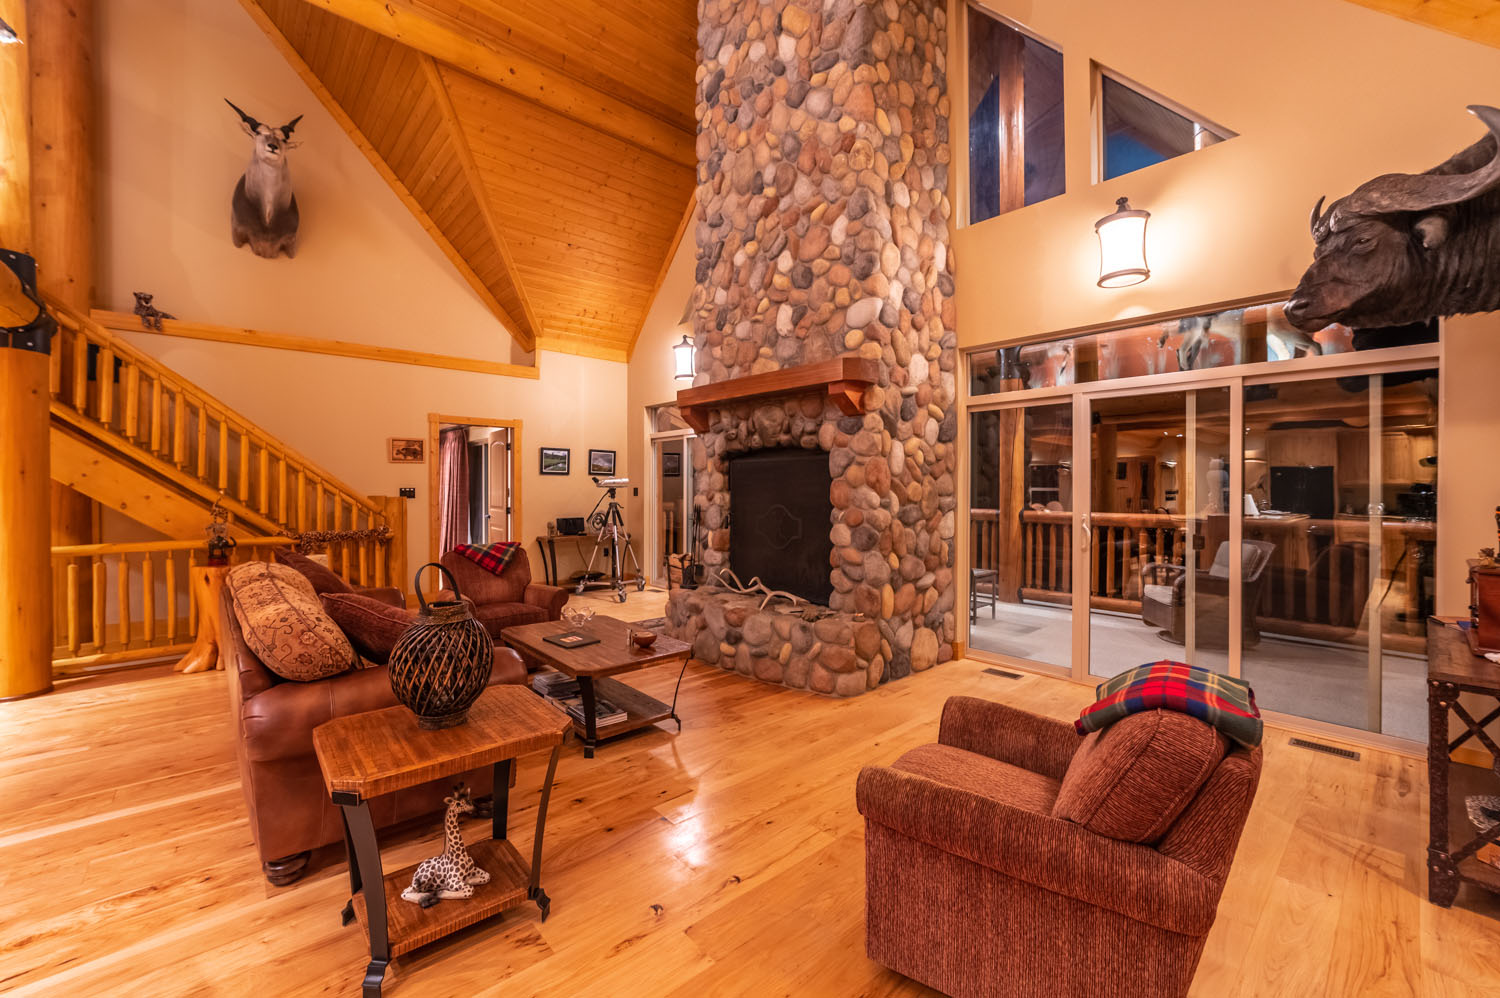 Willow springs ranch 26